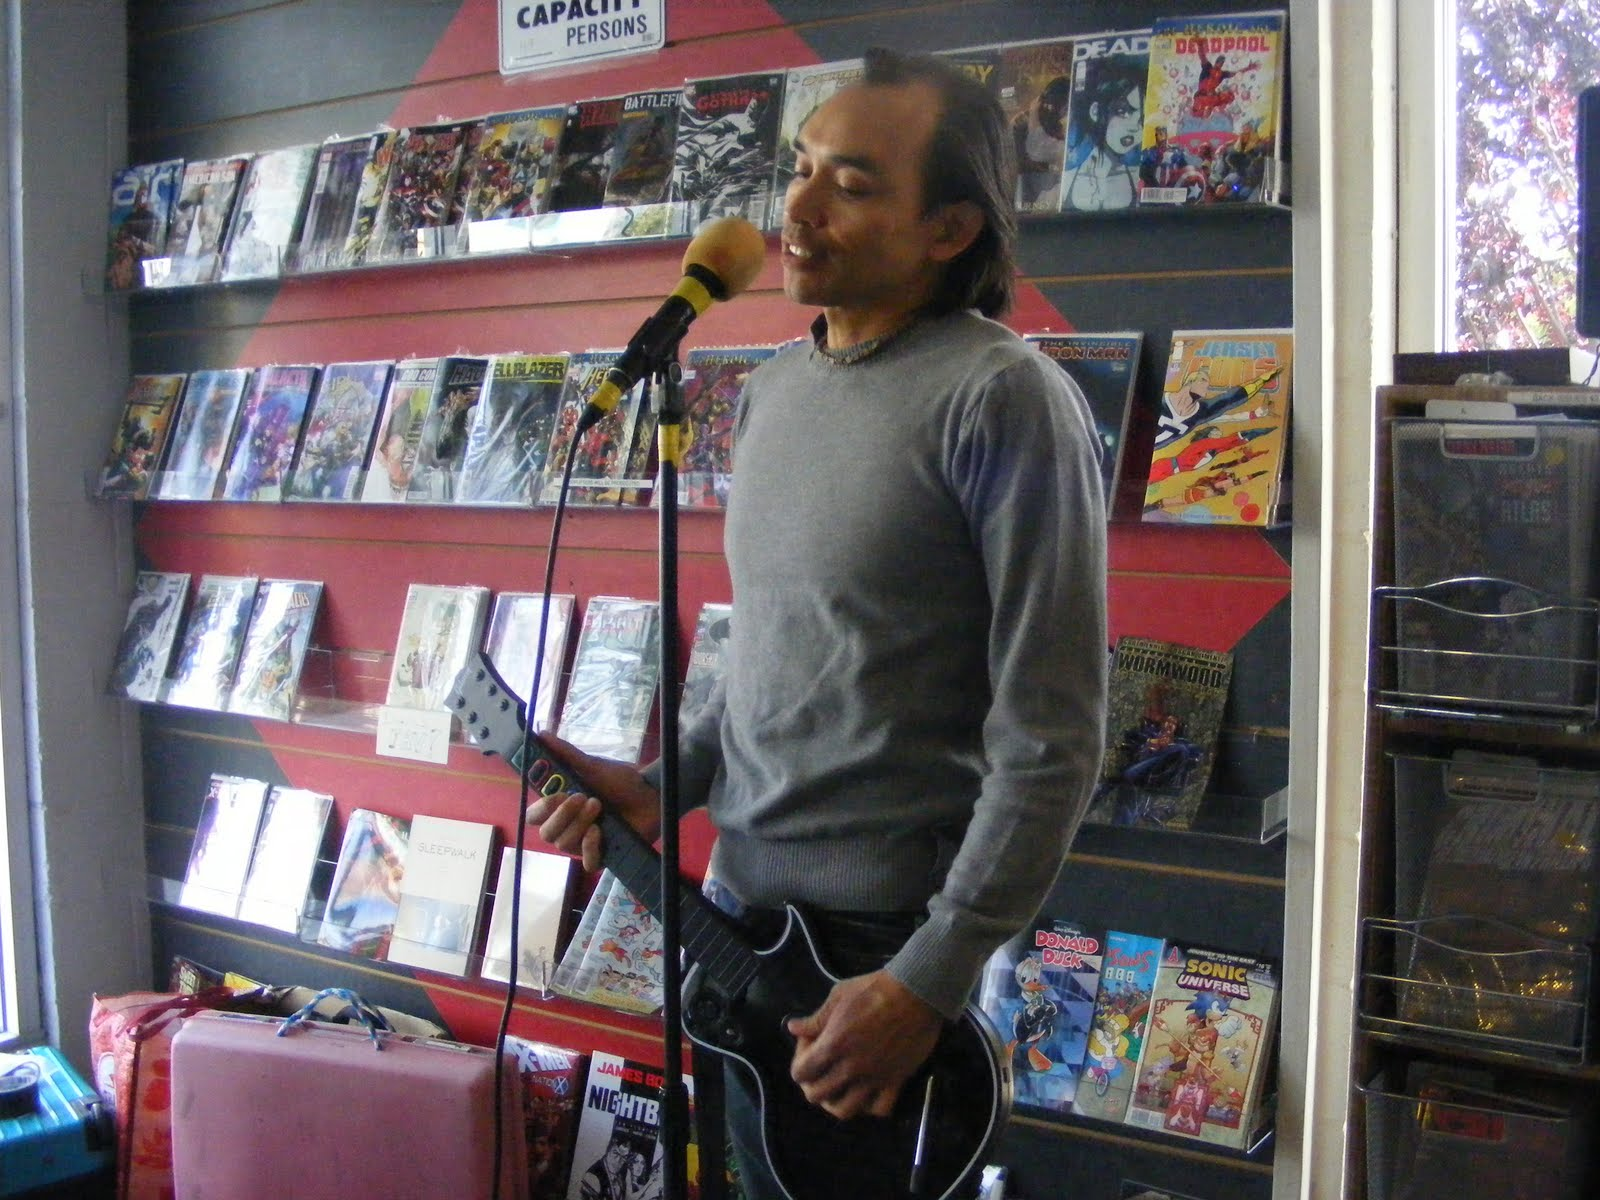 Singing karaoke in a comic book coffee shop